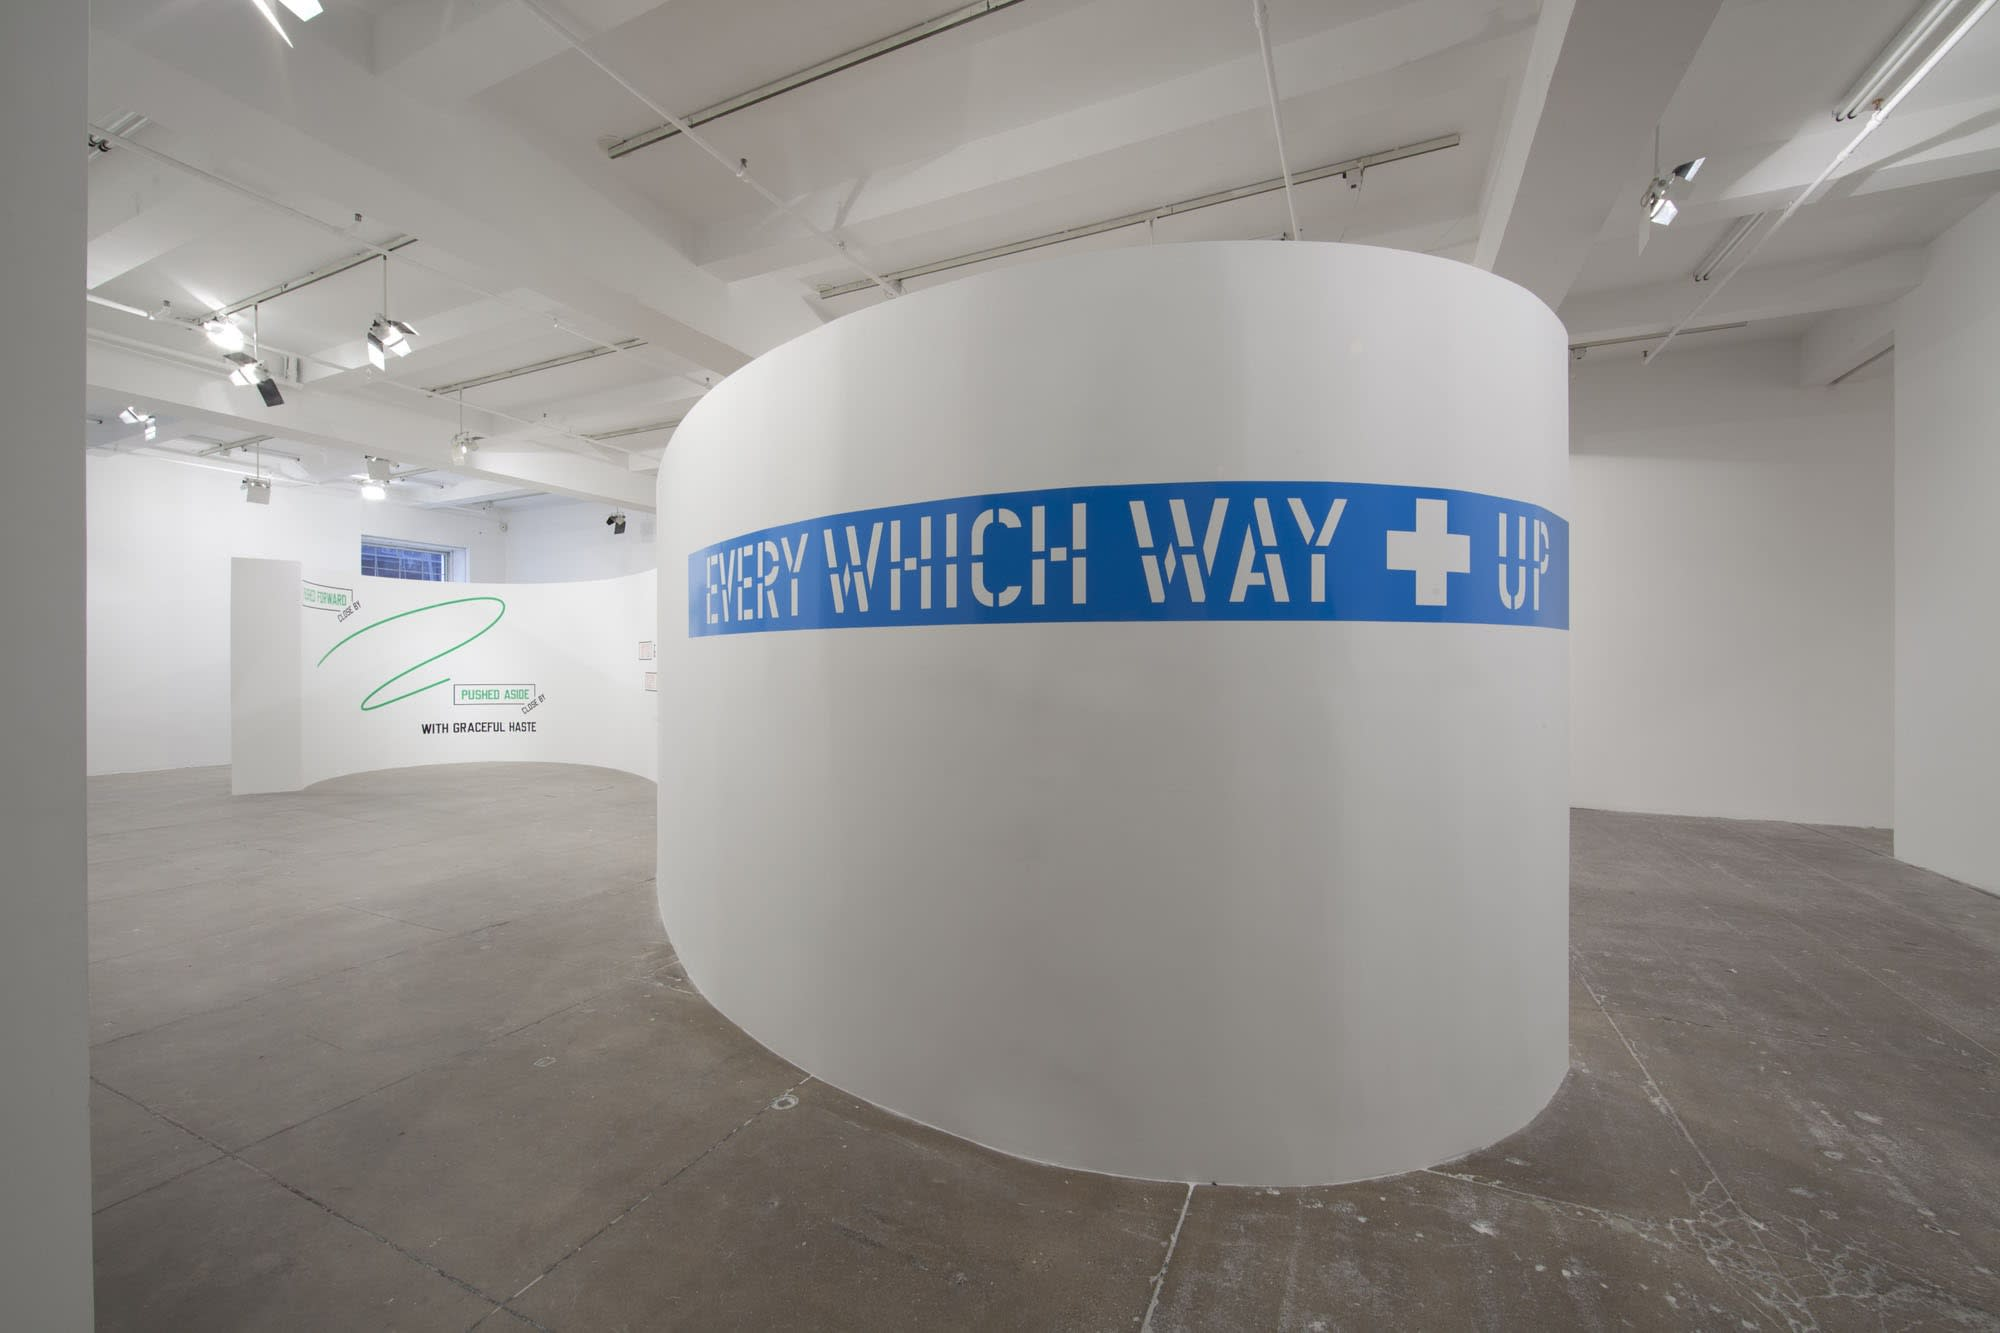 On a curved white wall, large white text over a blue background strip reads: EVERY WHICH WAY UP